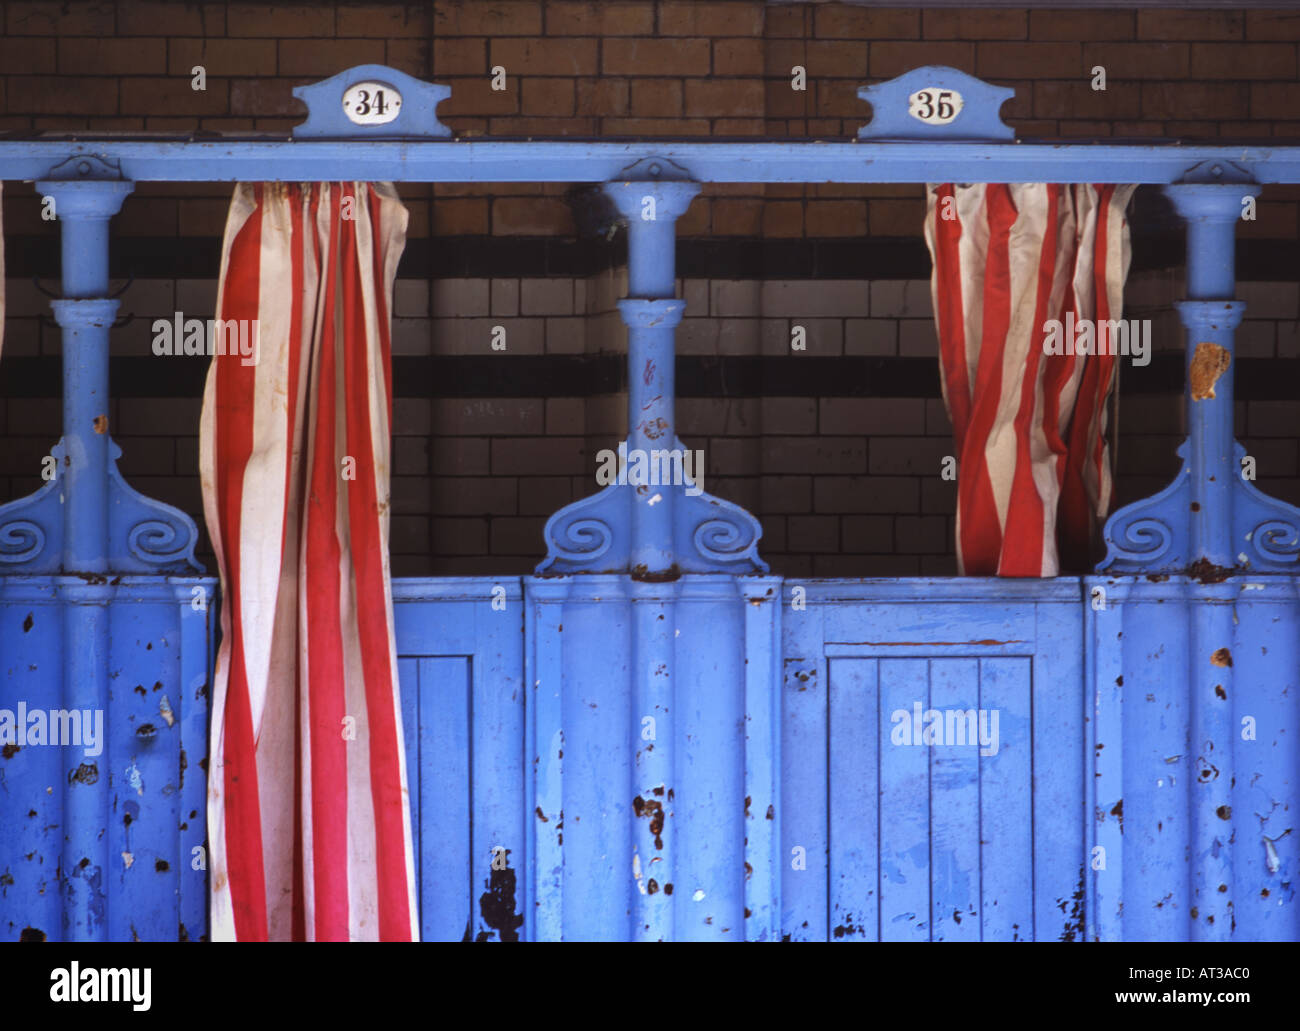 Victoria Baths changing cubicles 2 - Stock Image